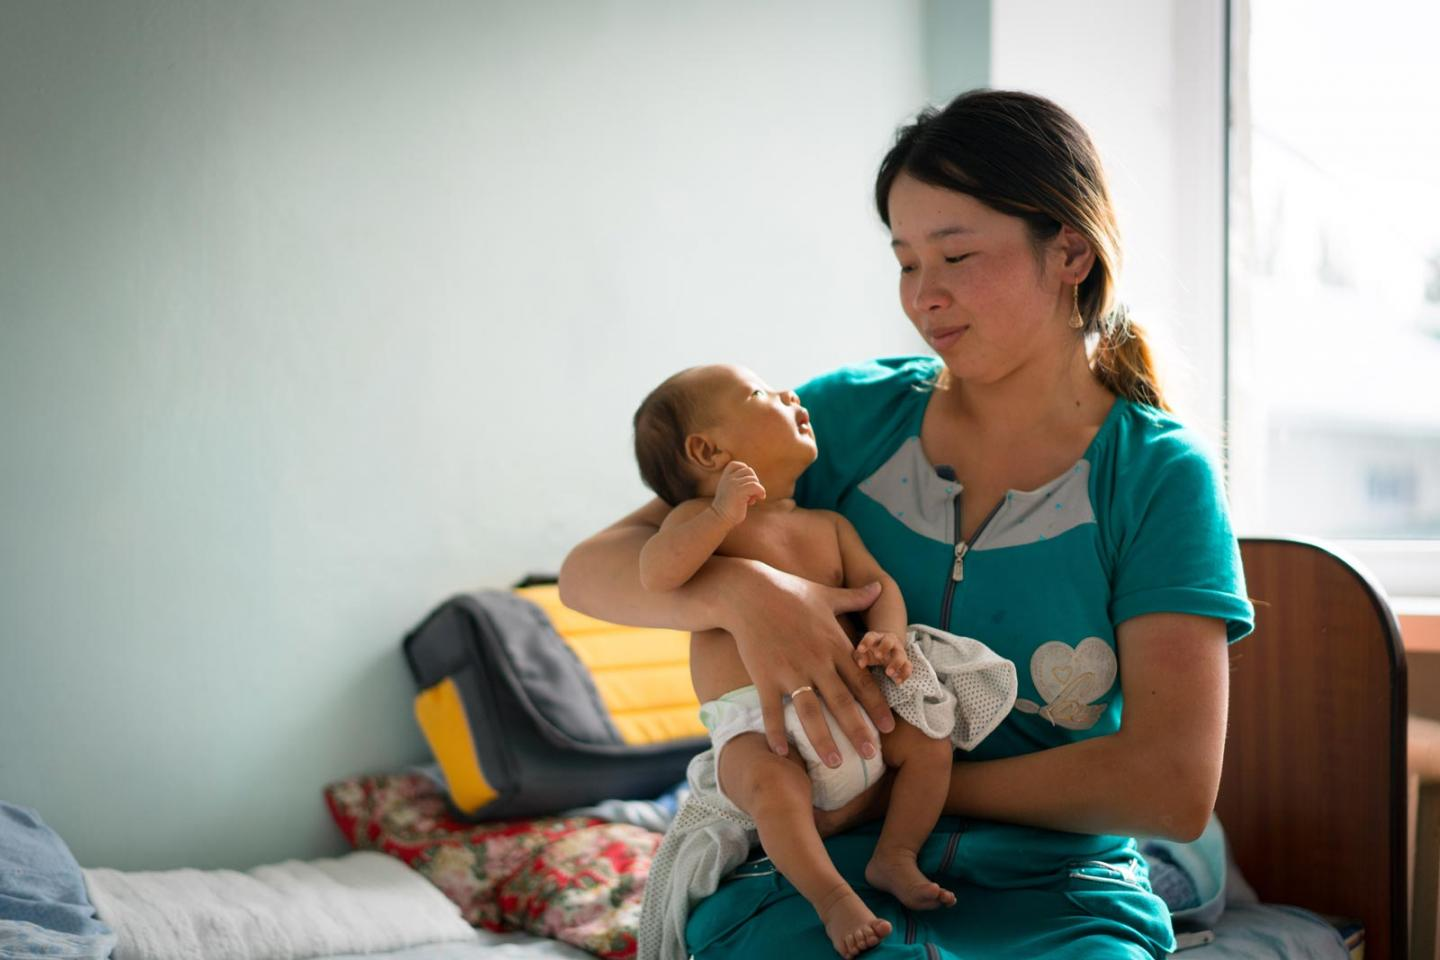 A young mother in turquoise dress holds an infant in her arms